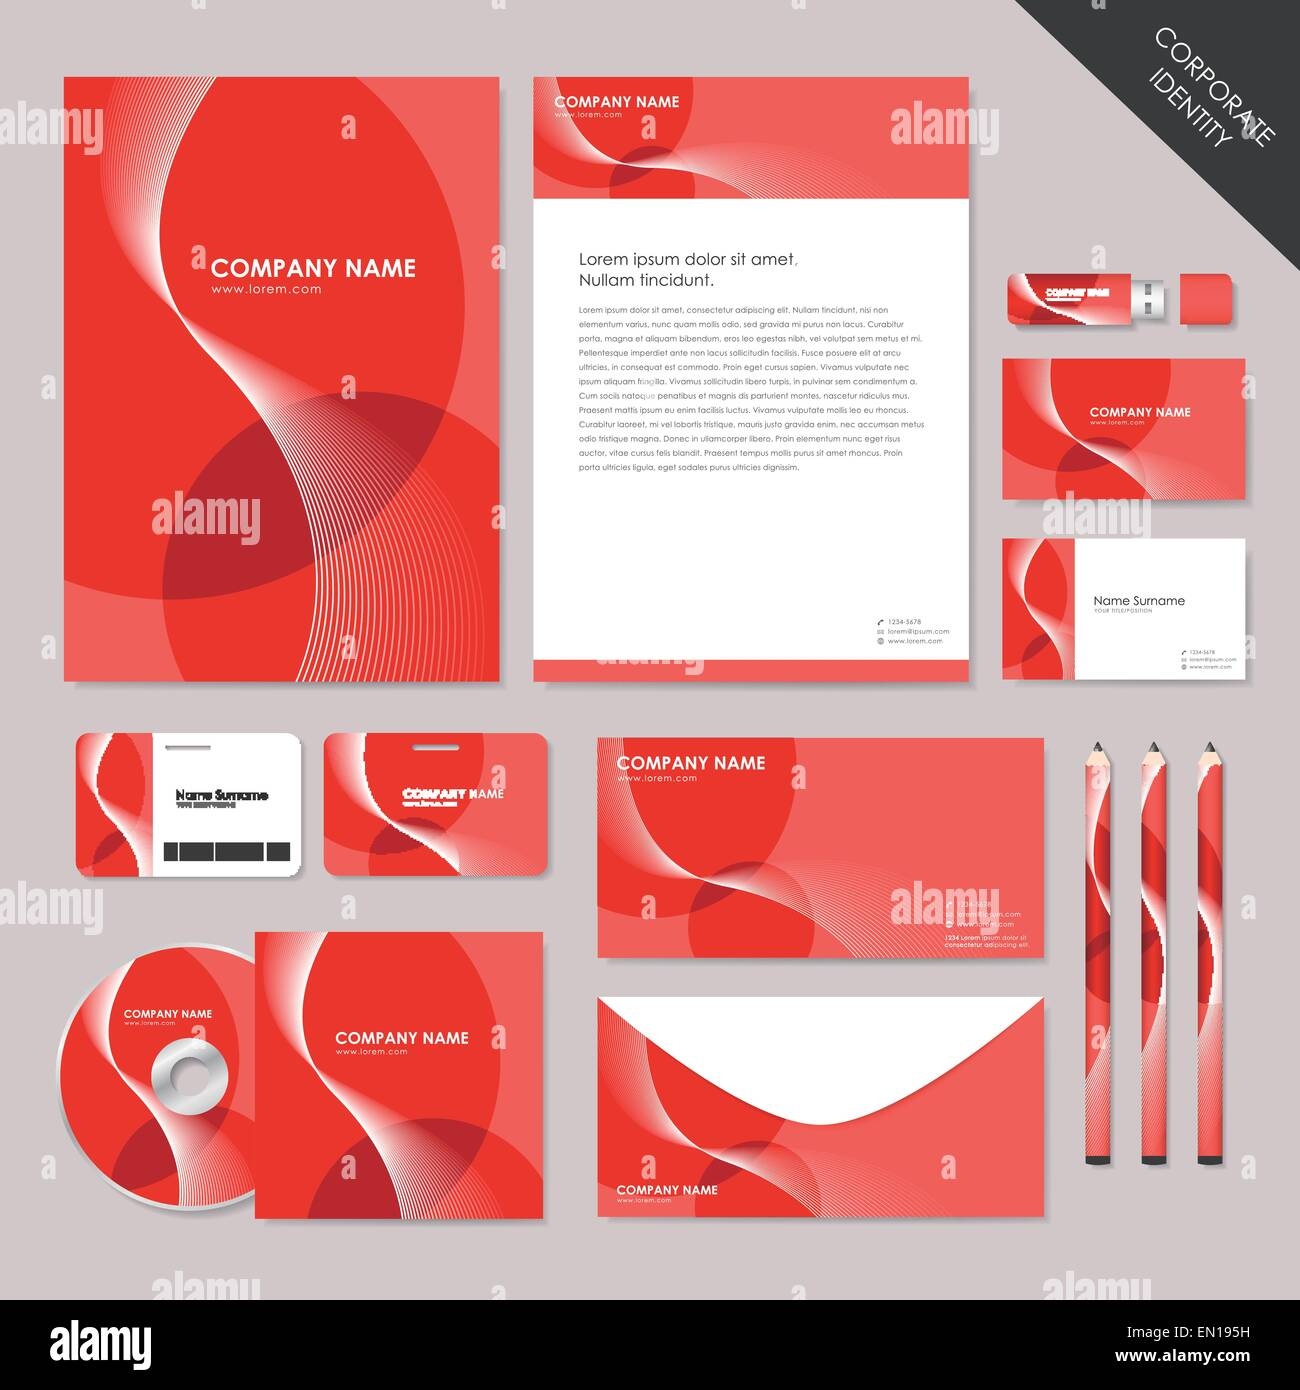 Corporate Graphic Design Vector Abstract Corporate Identity Set Graphic Design Of Red